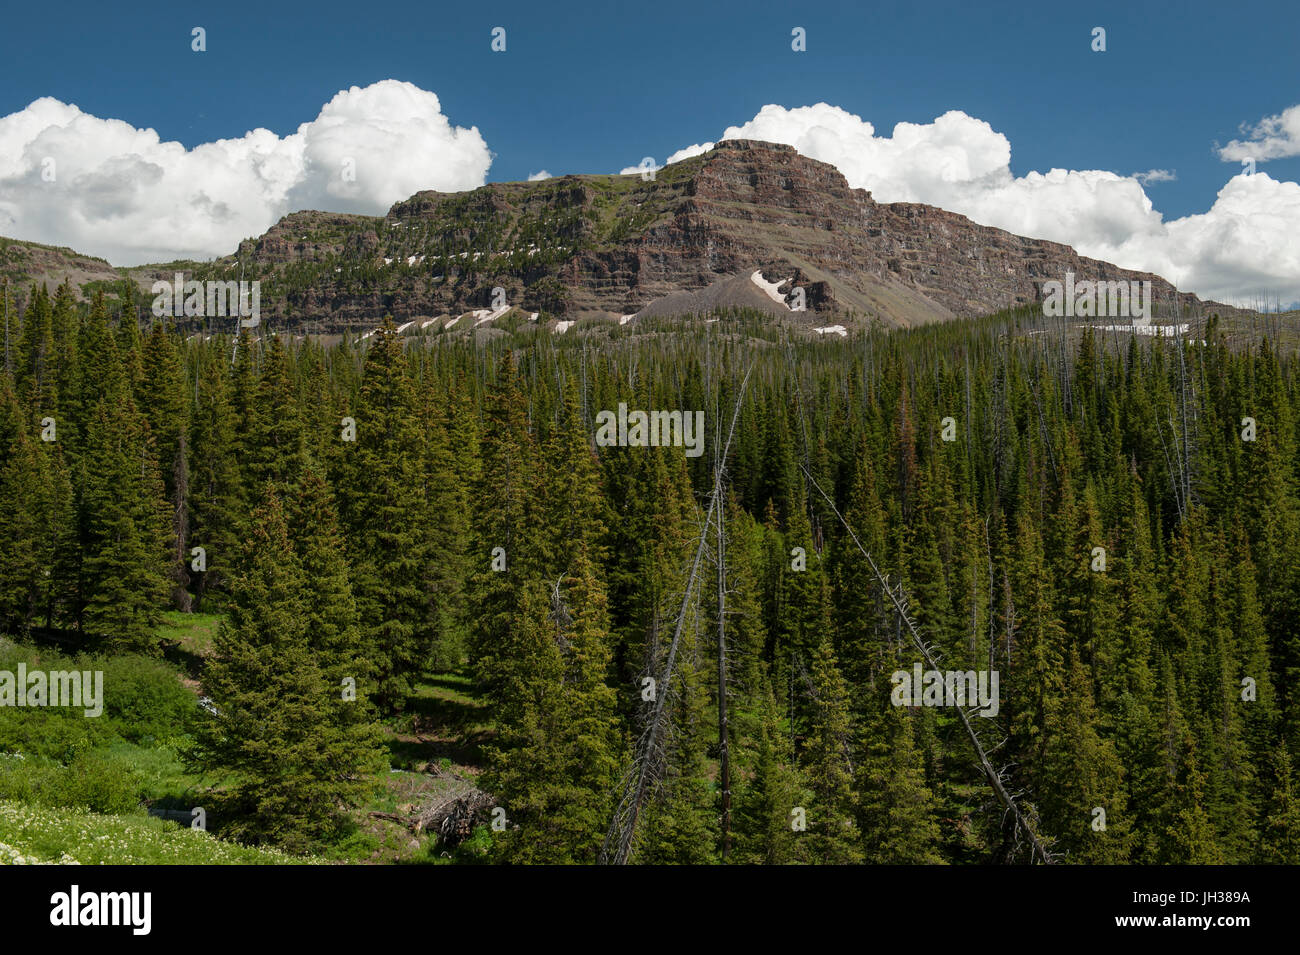 A portion of the Chinese Wall above the Skinny Fish Basin in northwest Colorado's Flat Tops Wilderness. - Stock Image